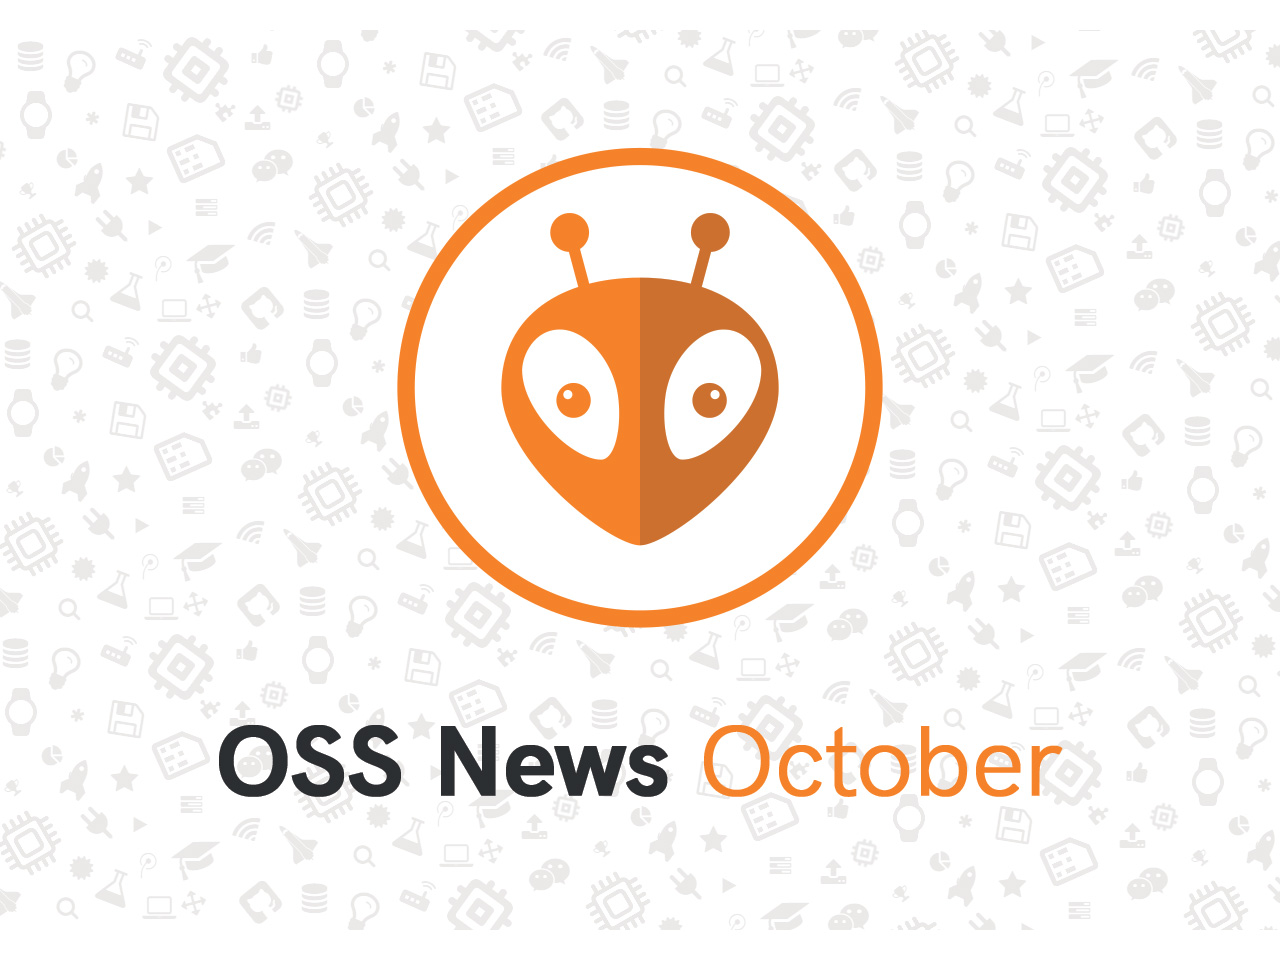 PlatformIO Open Source October Updates